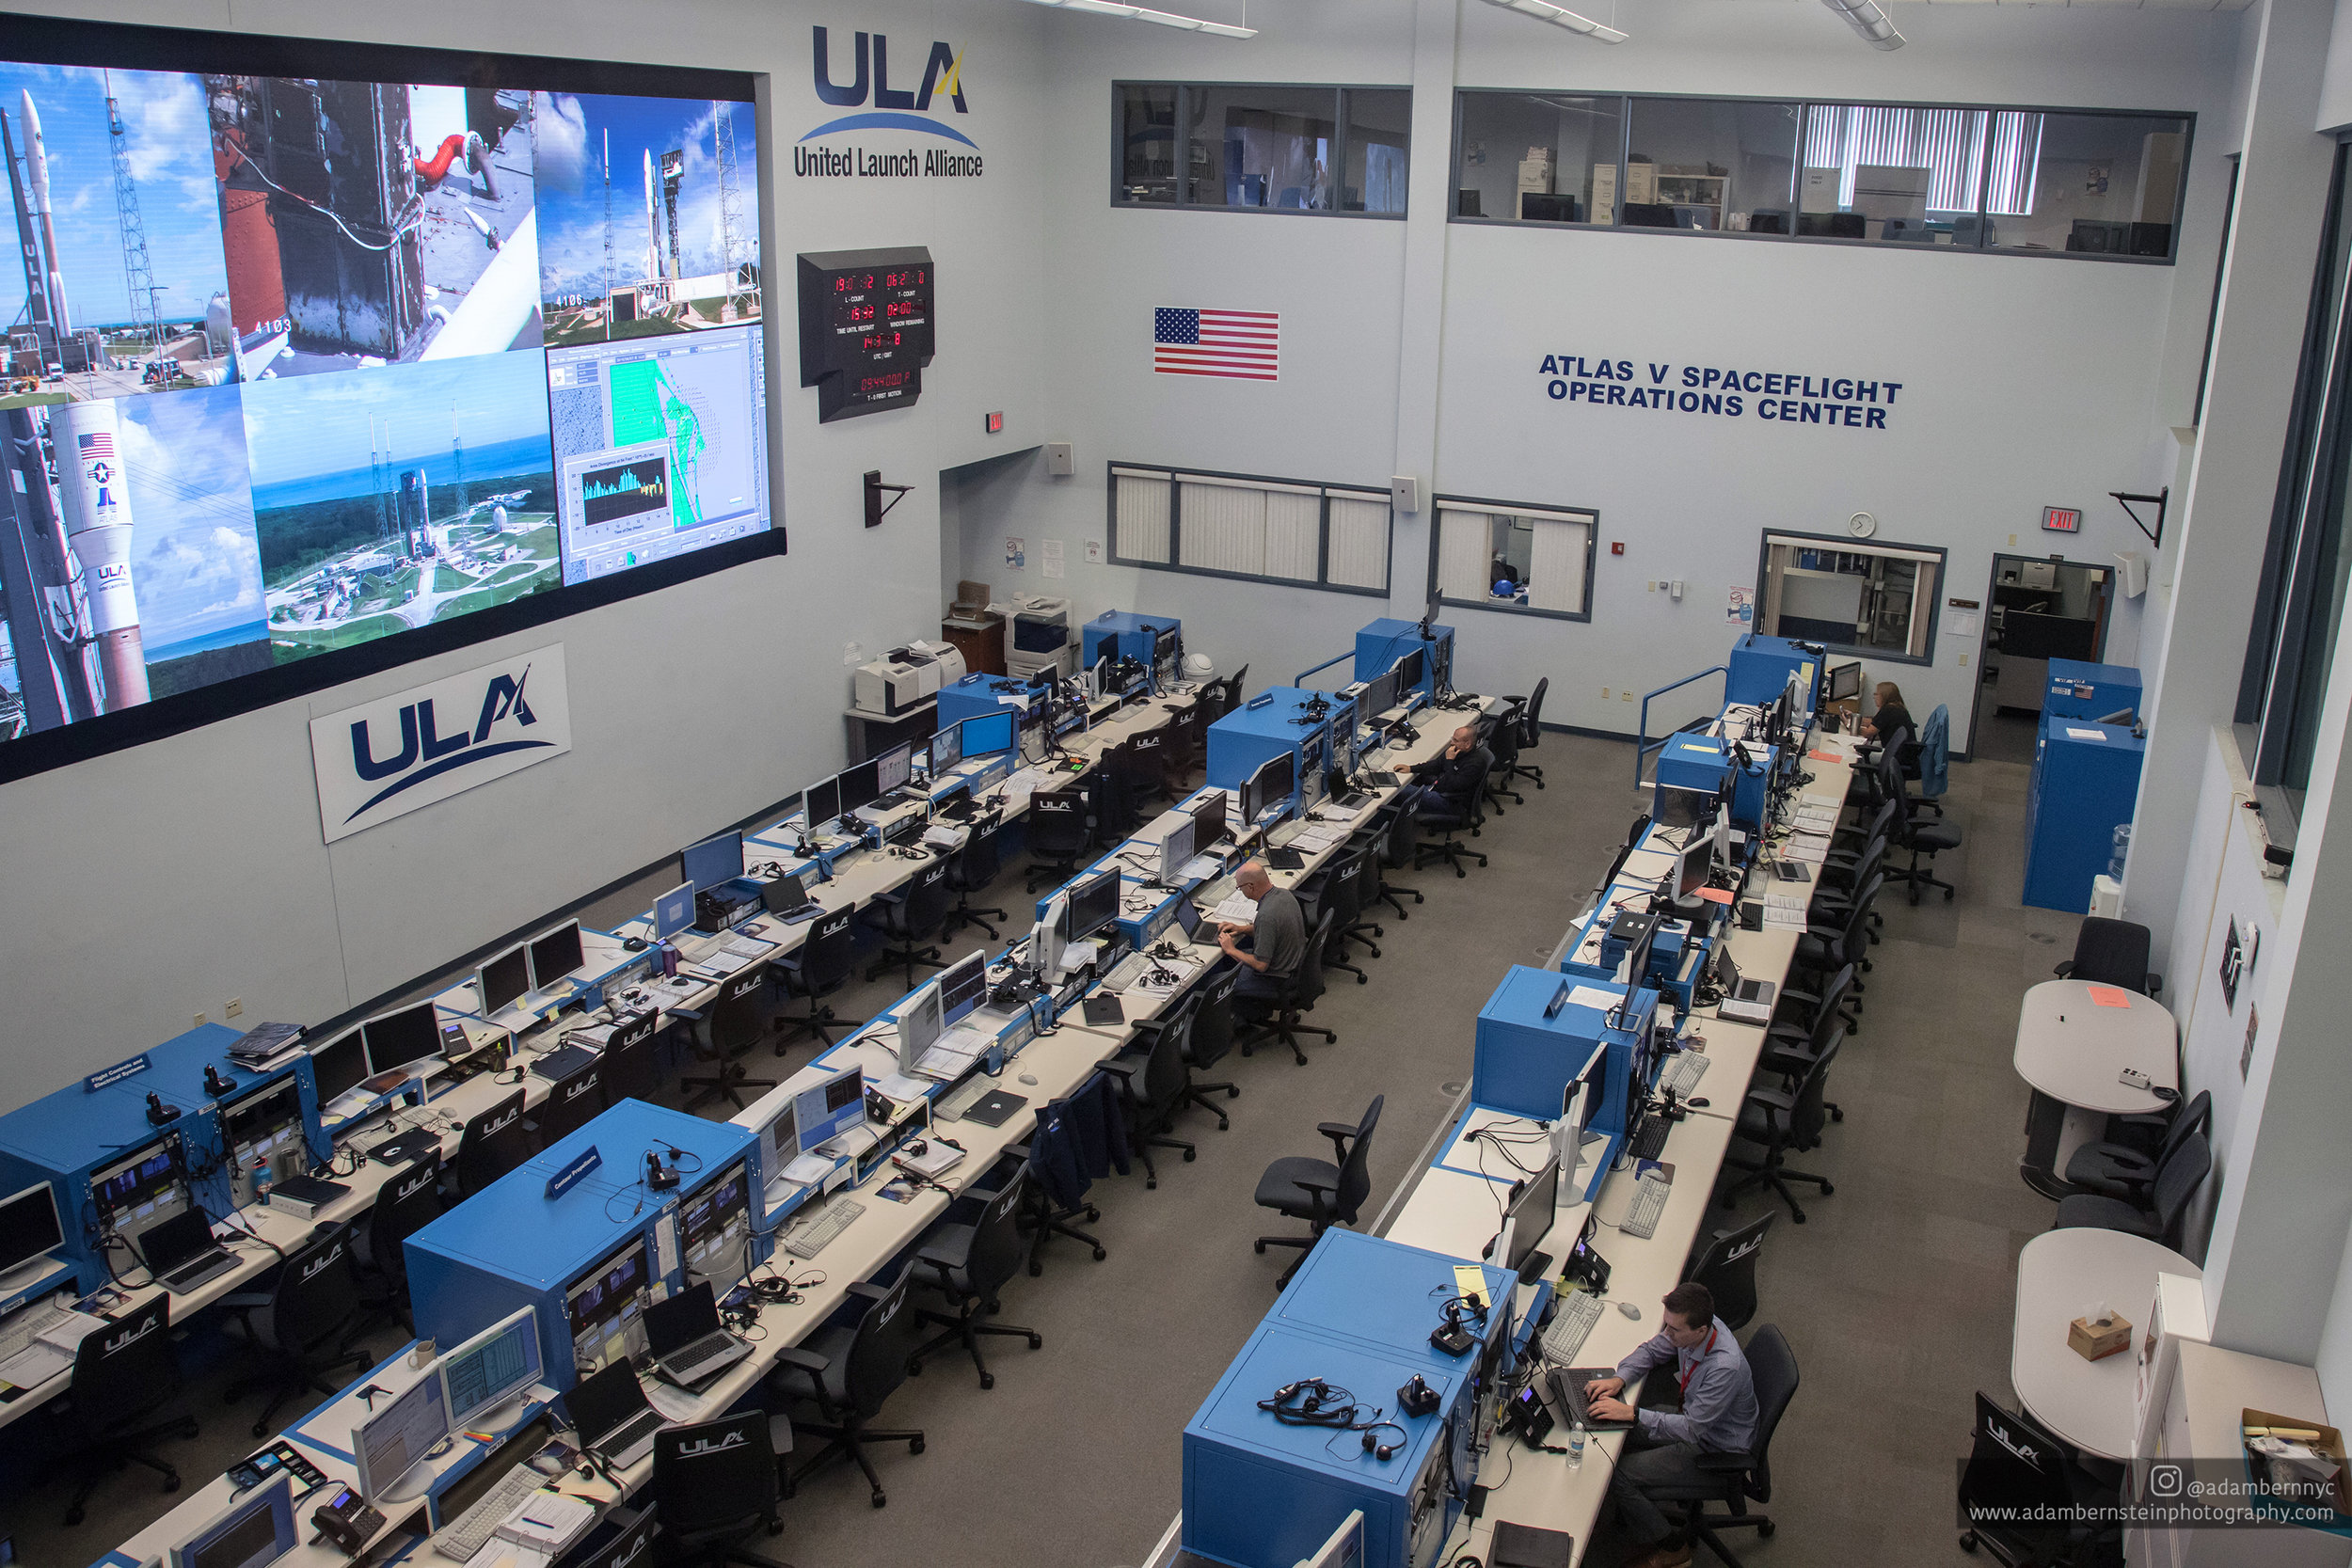 A view of the Atlas Launch Control Center (LCC) located within the Atlas Spaceflight Operations Center.